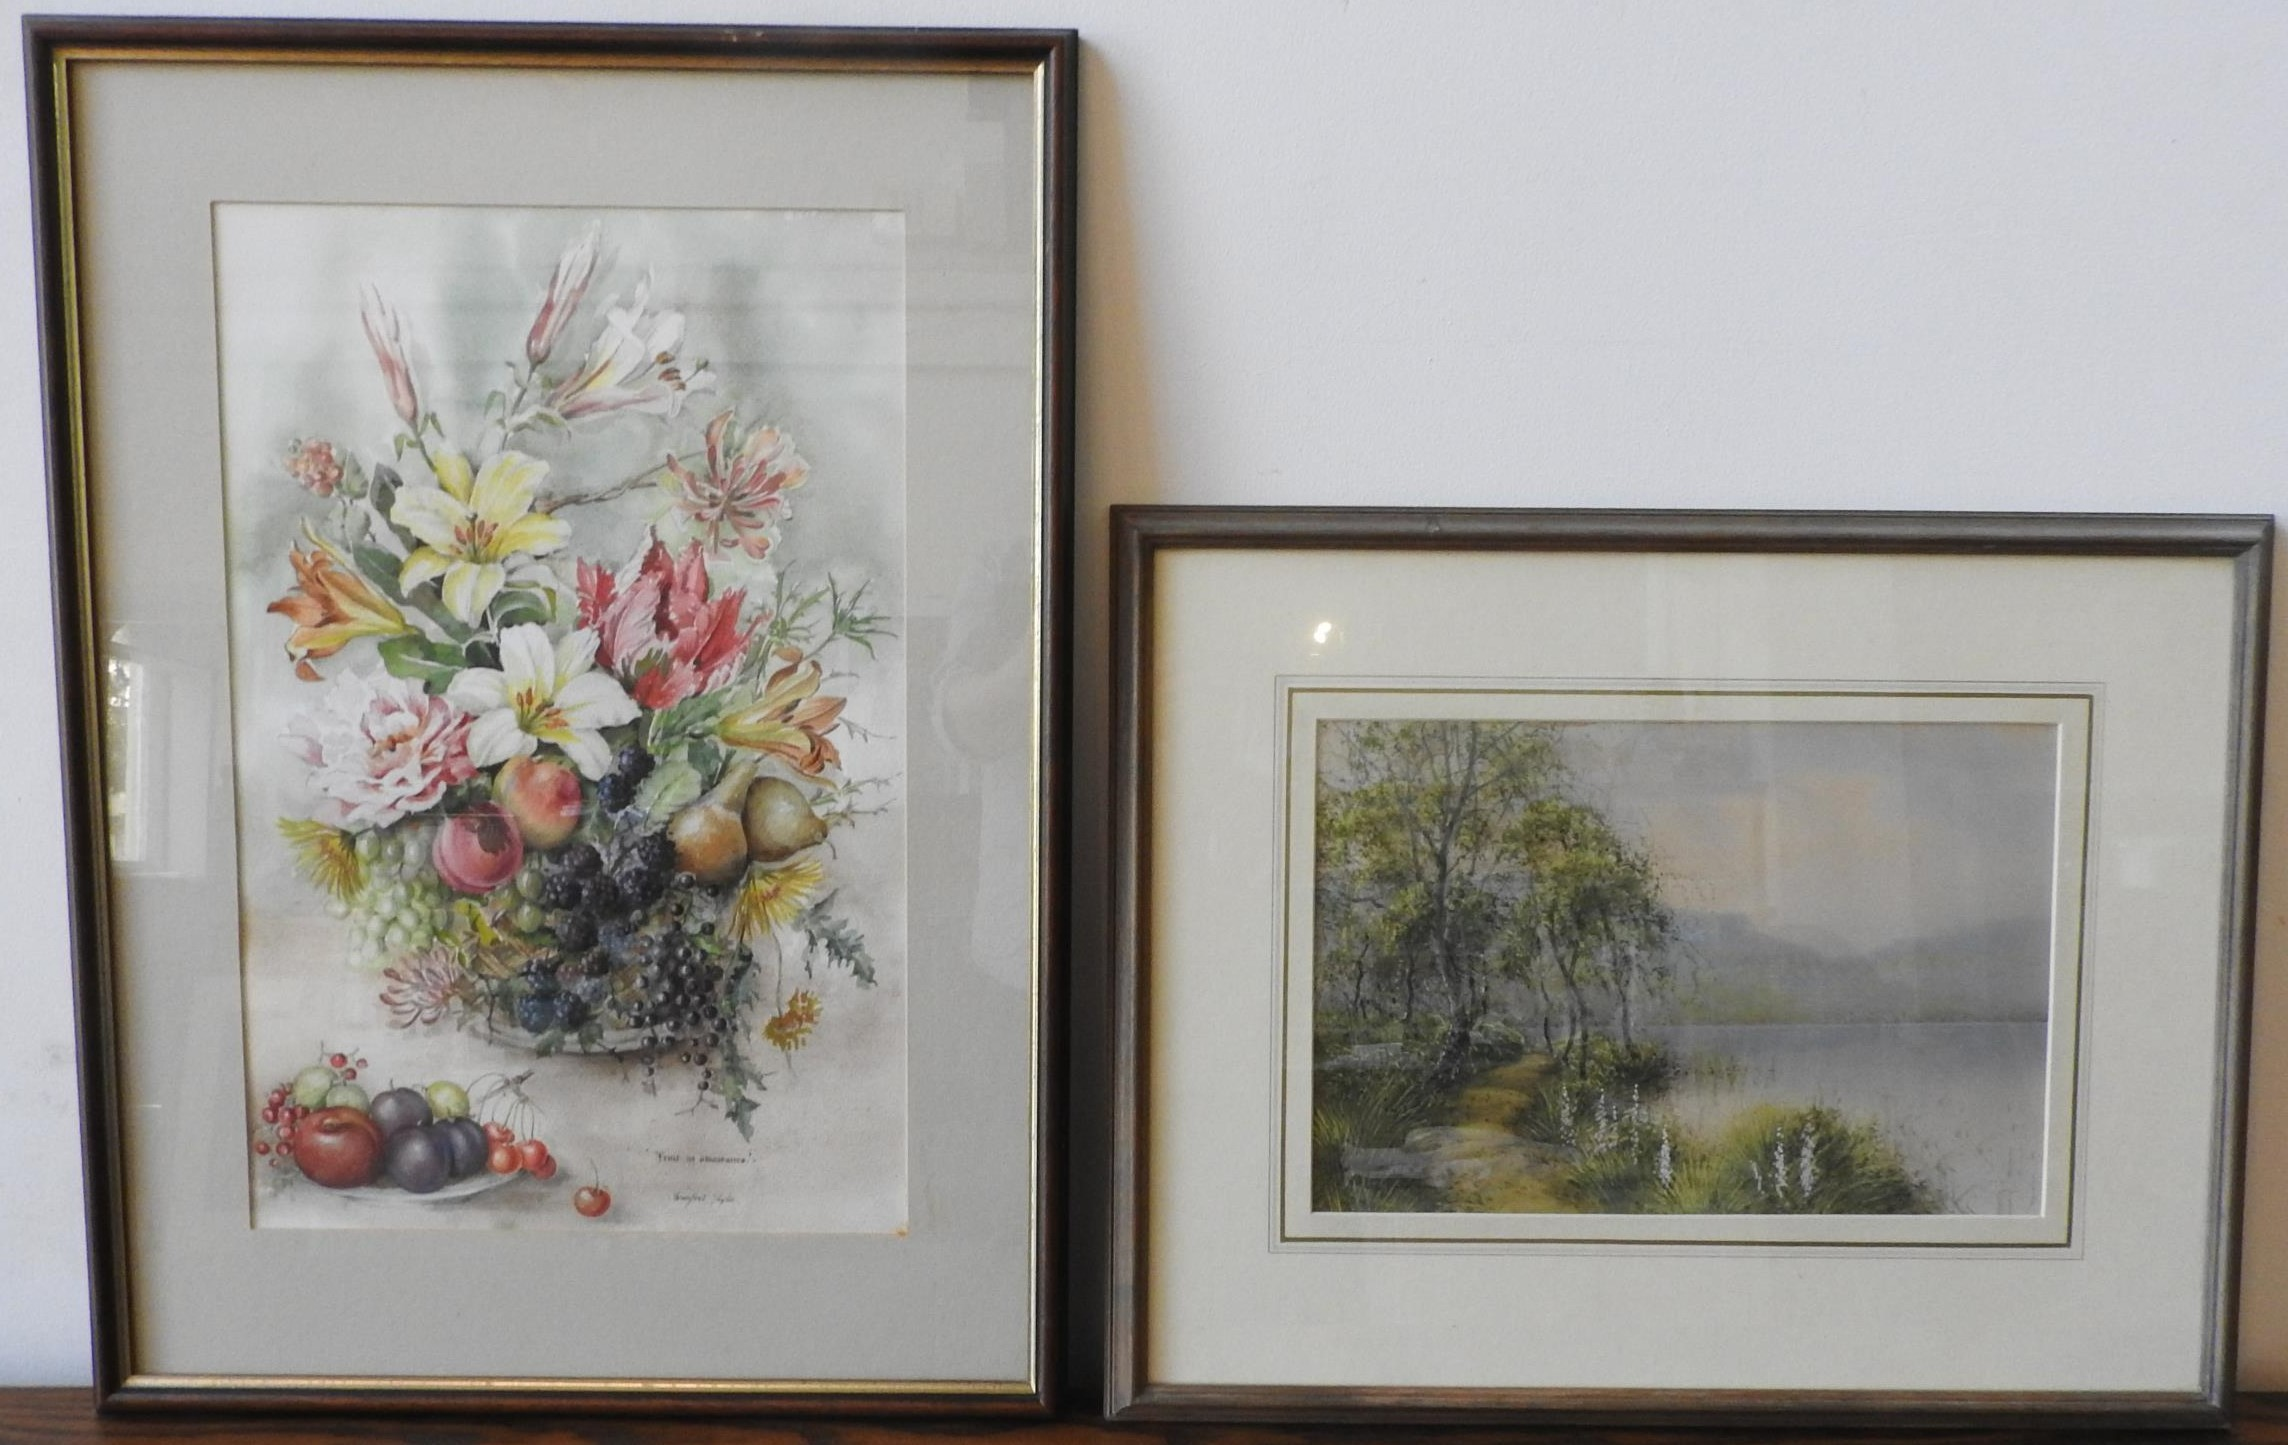 WATERCOLOUR ON PAPER 'FRUIT IN ABUNDANCE', WINIFRED TAYLOR AND LAKE SCENE WATER COLOUR, the Winifred